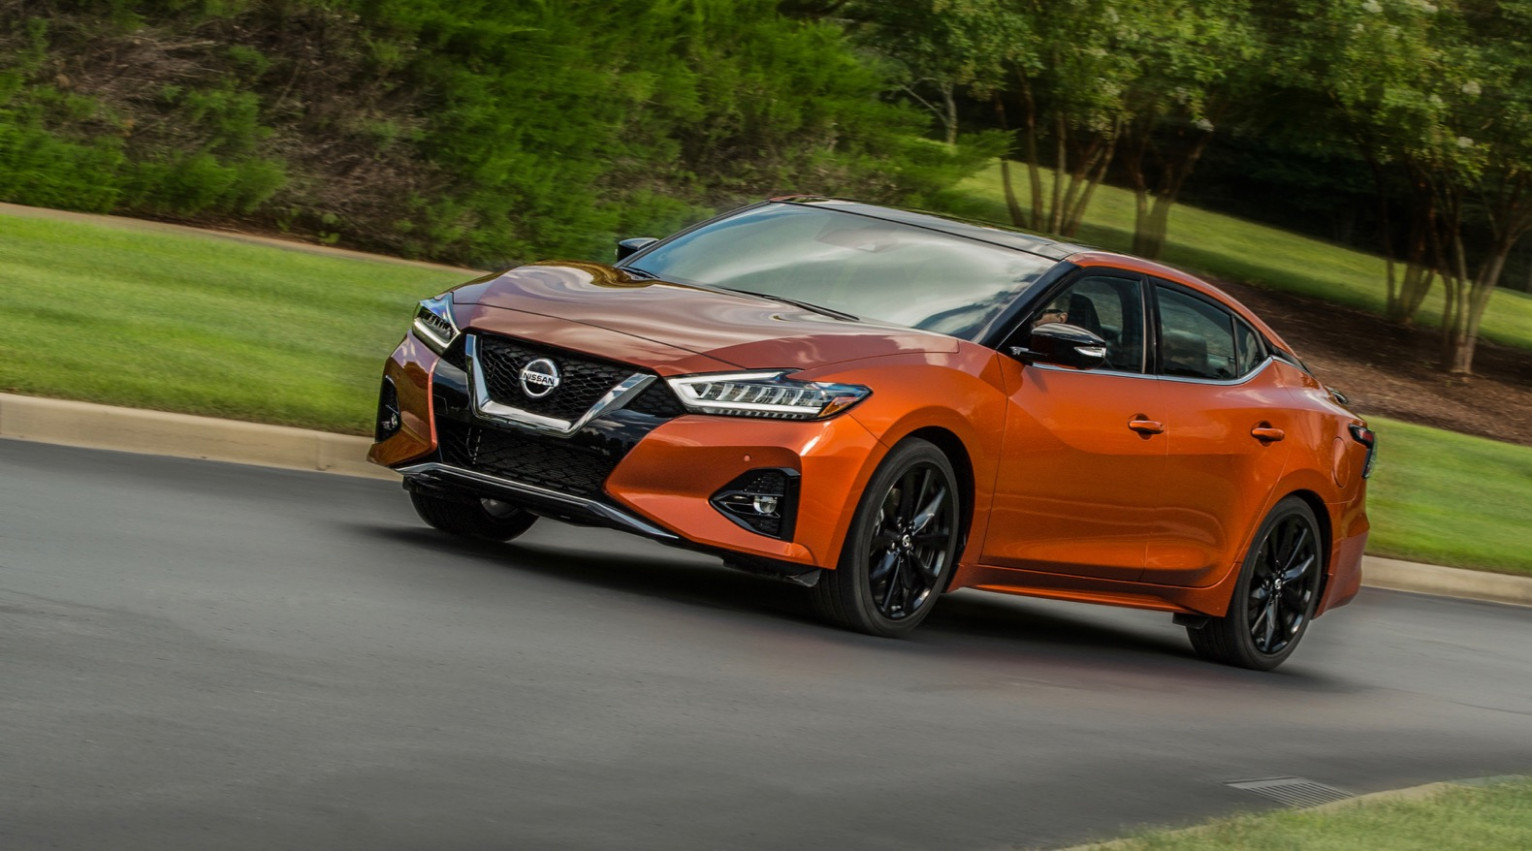 Spy Shoot When Does The 2022 Nissan Maxima Come Out